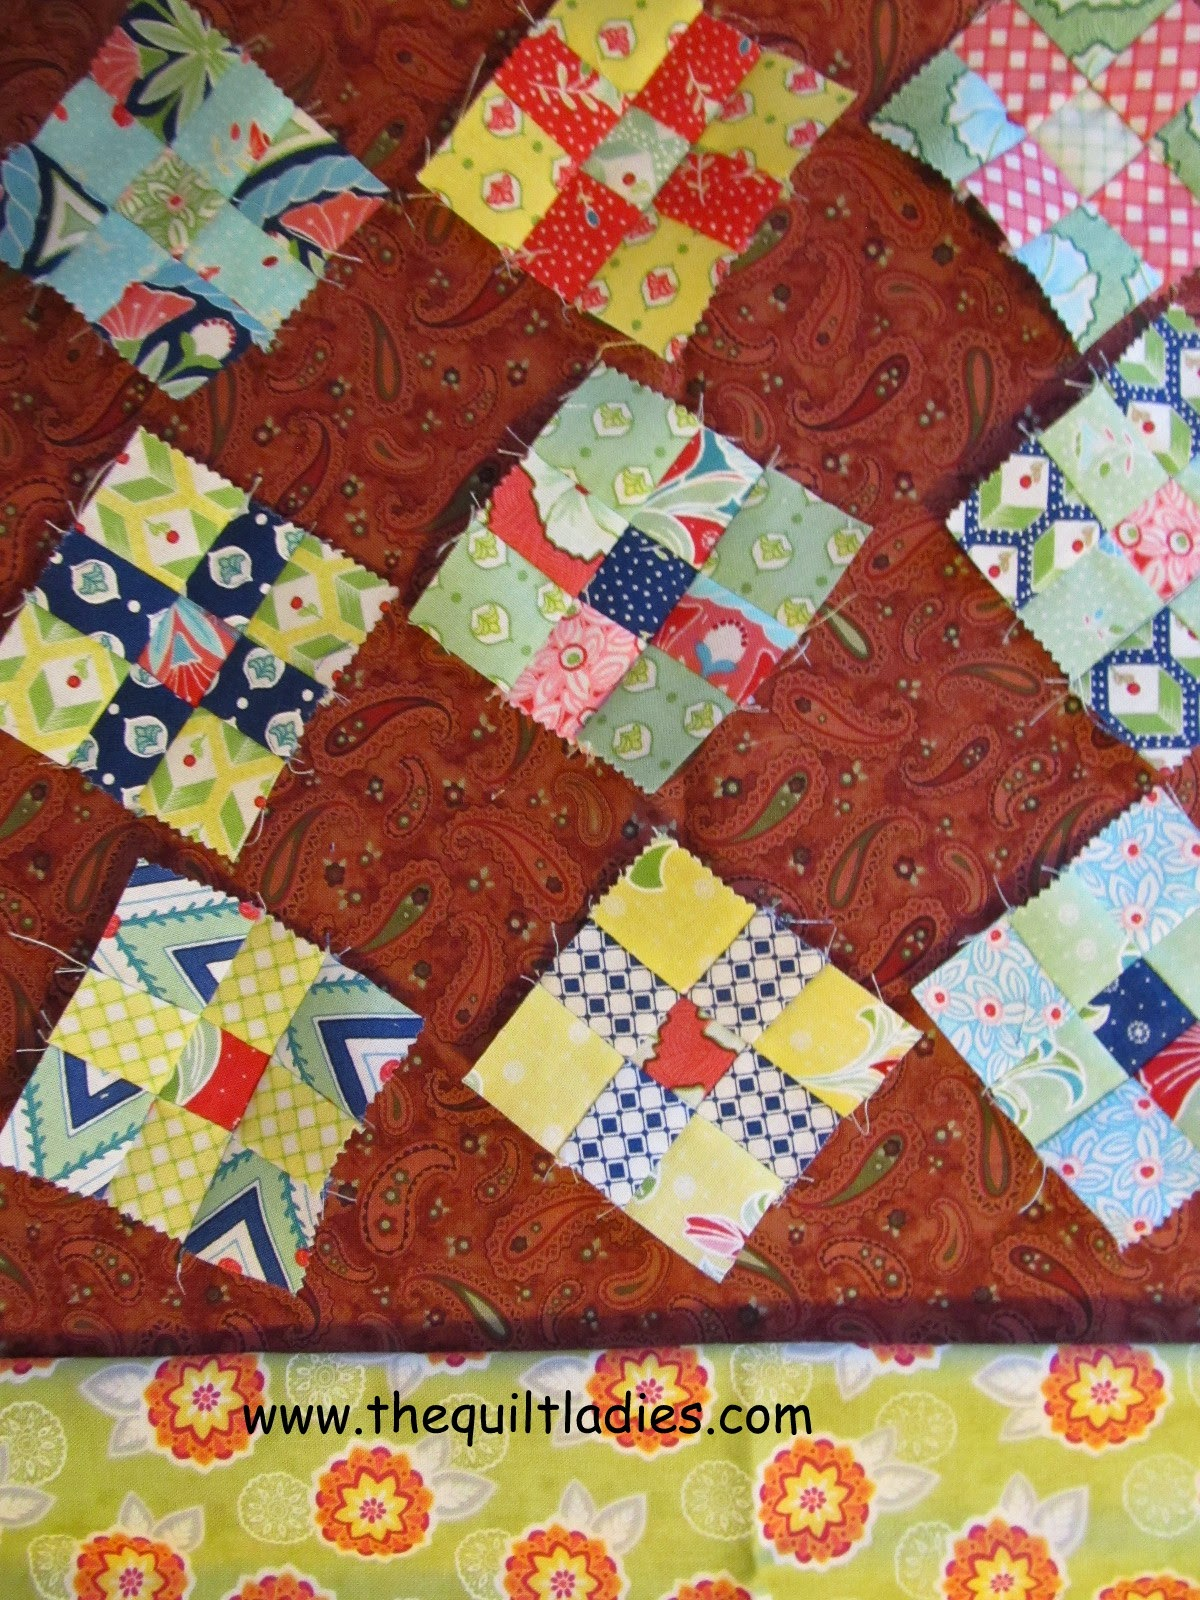 How to choose quilt fabric colors